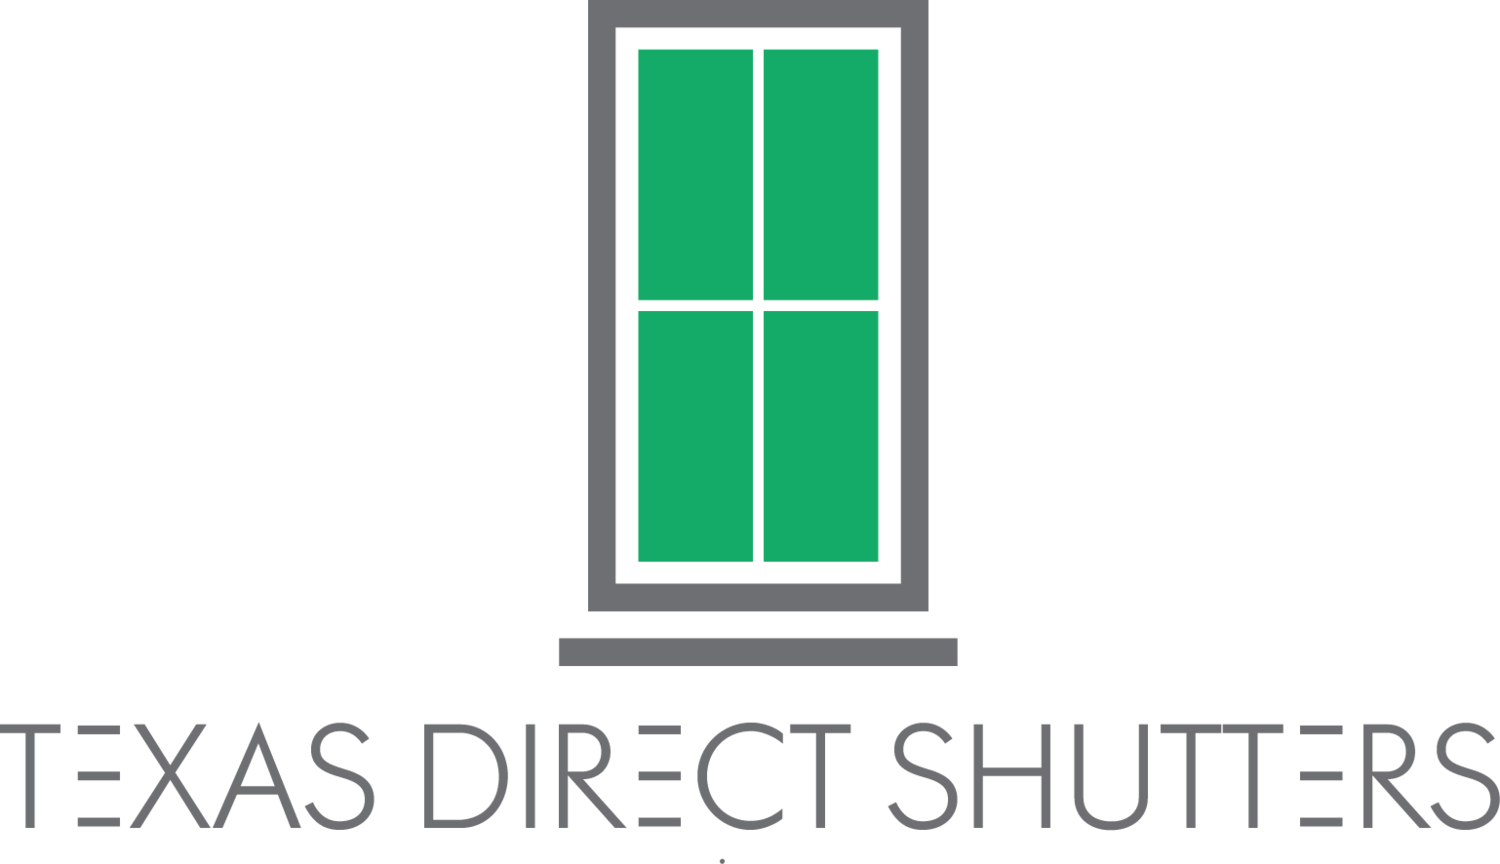 Texas Direct Shutters - Austin's Premier Window Fashions - Shutters, Shades and Blinds - 512-900-7620